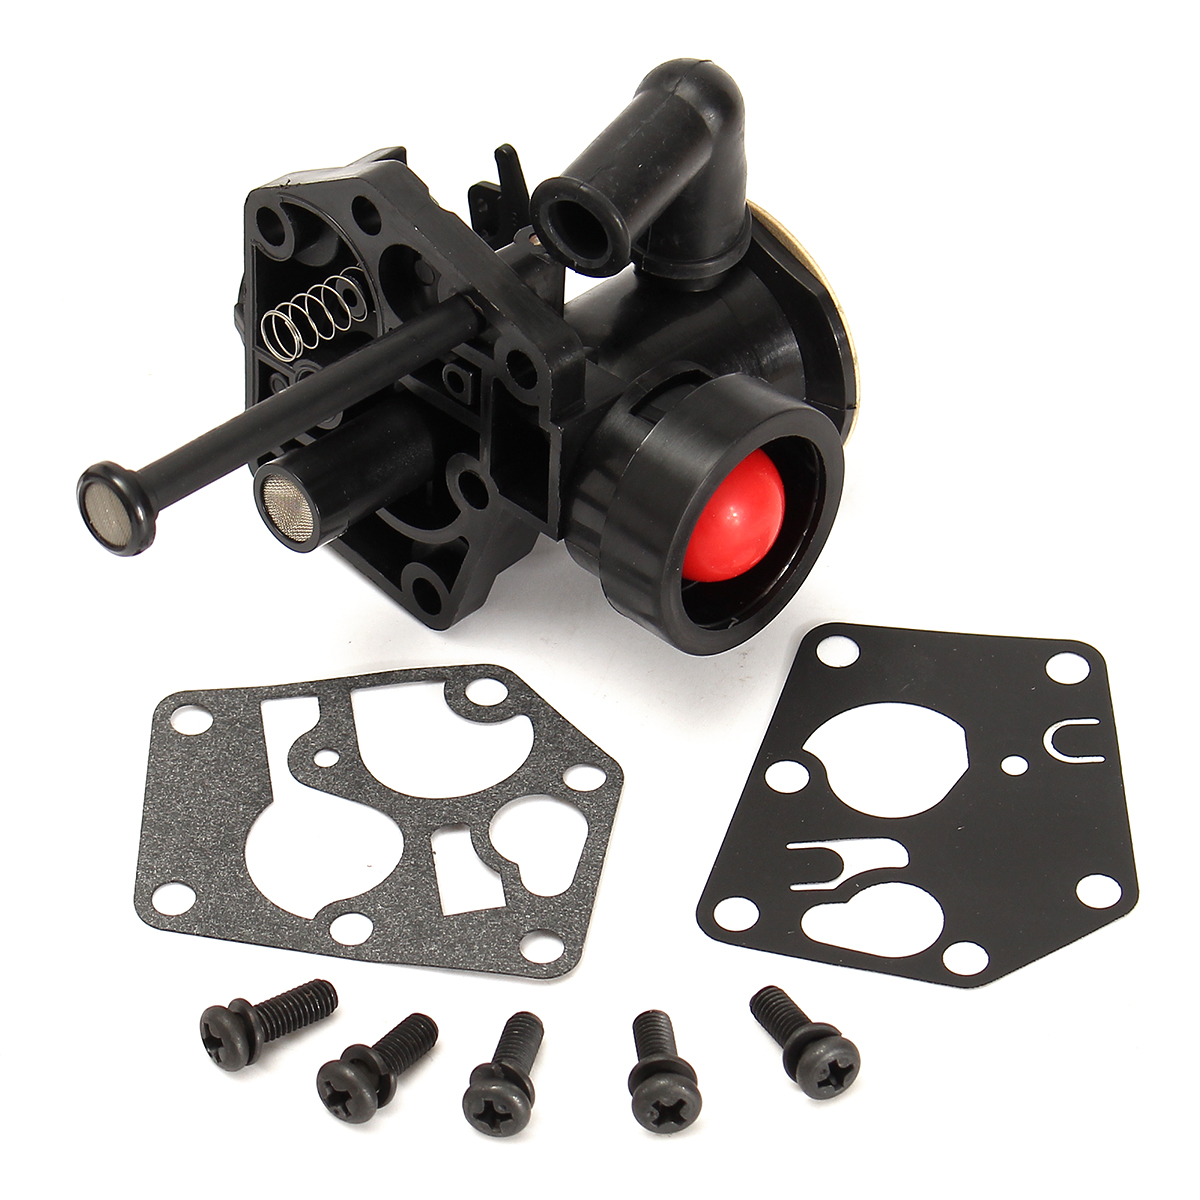 Carburetor with Gasket For Briggs Stratton Engine Lawnmower Primer 795475 790206